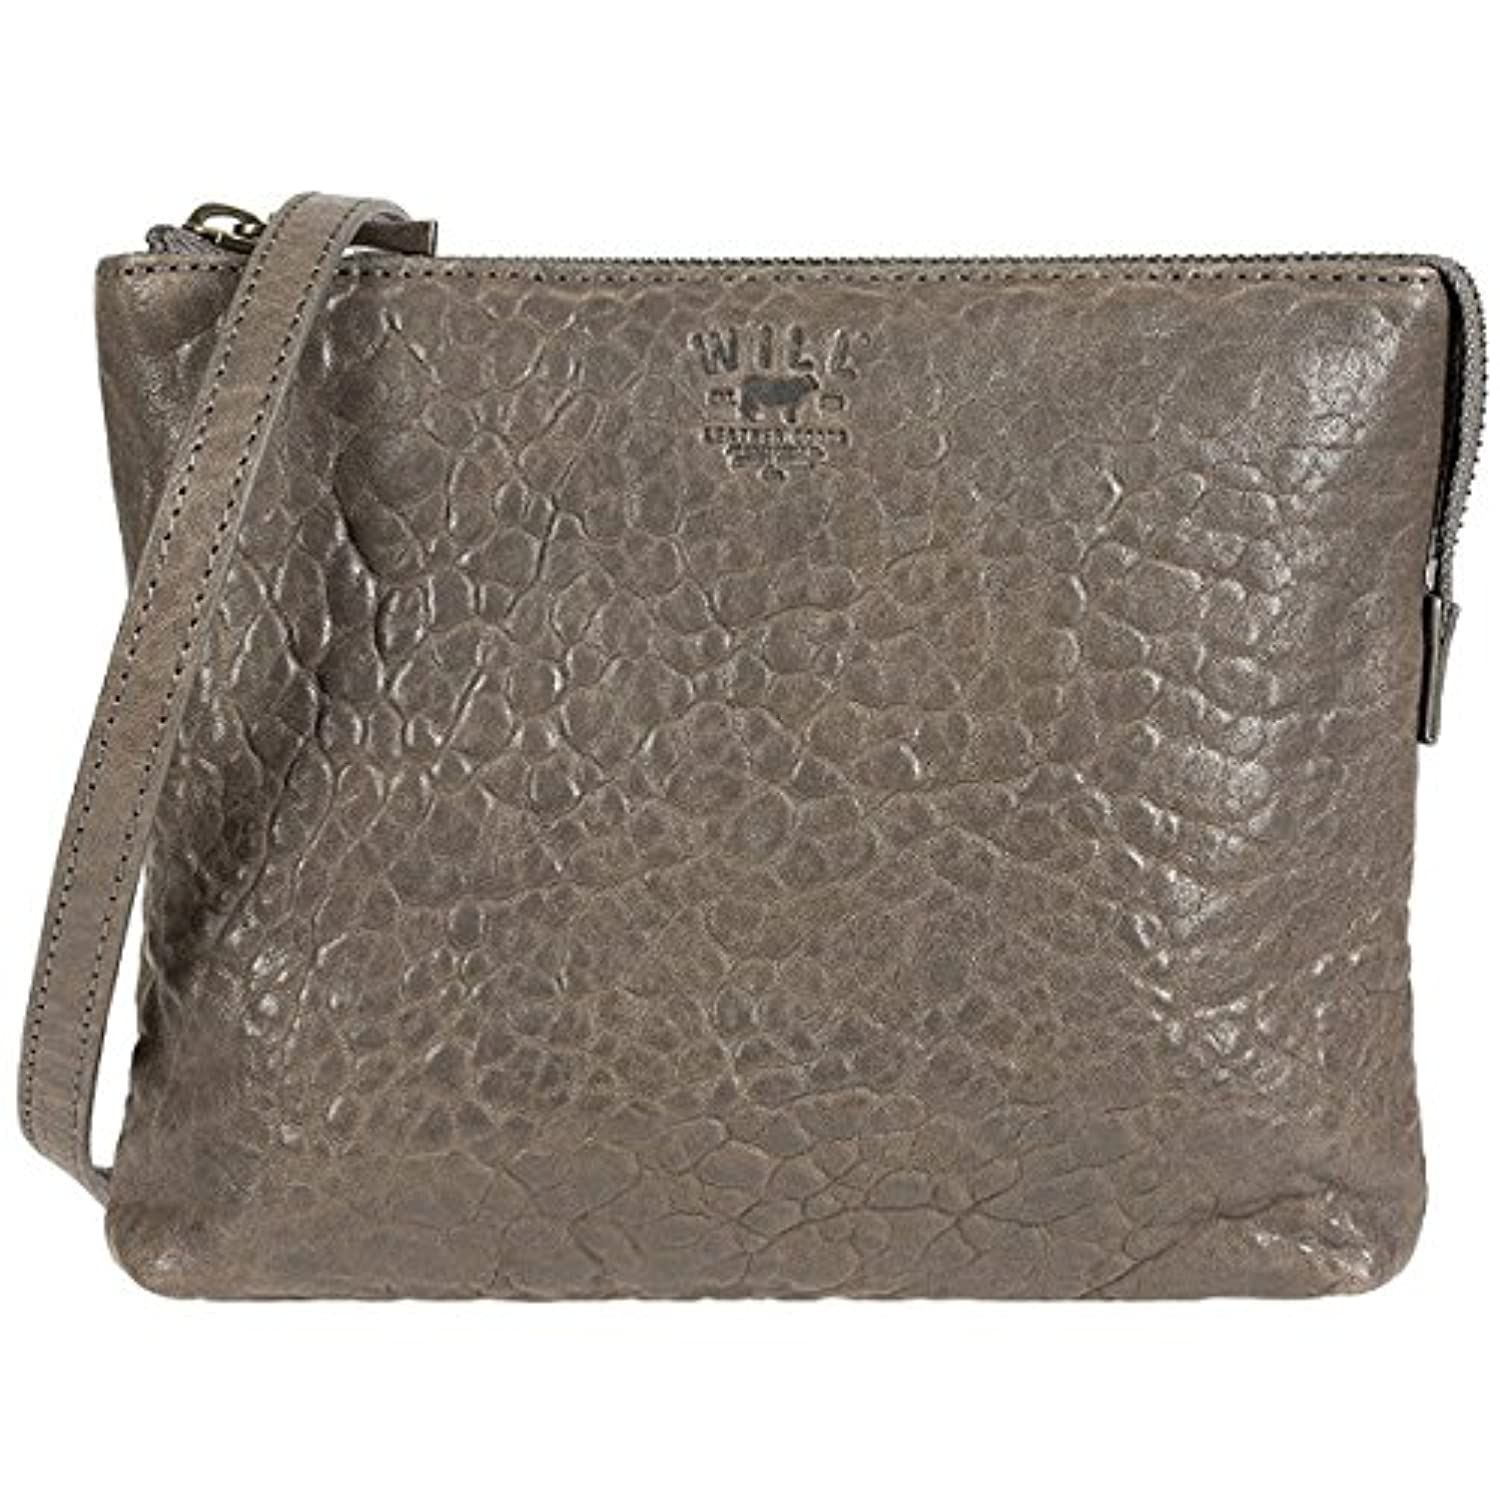 Will Leather Goods レディース Will Leather Goods